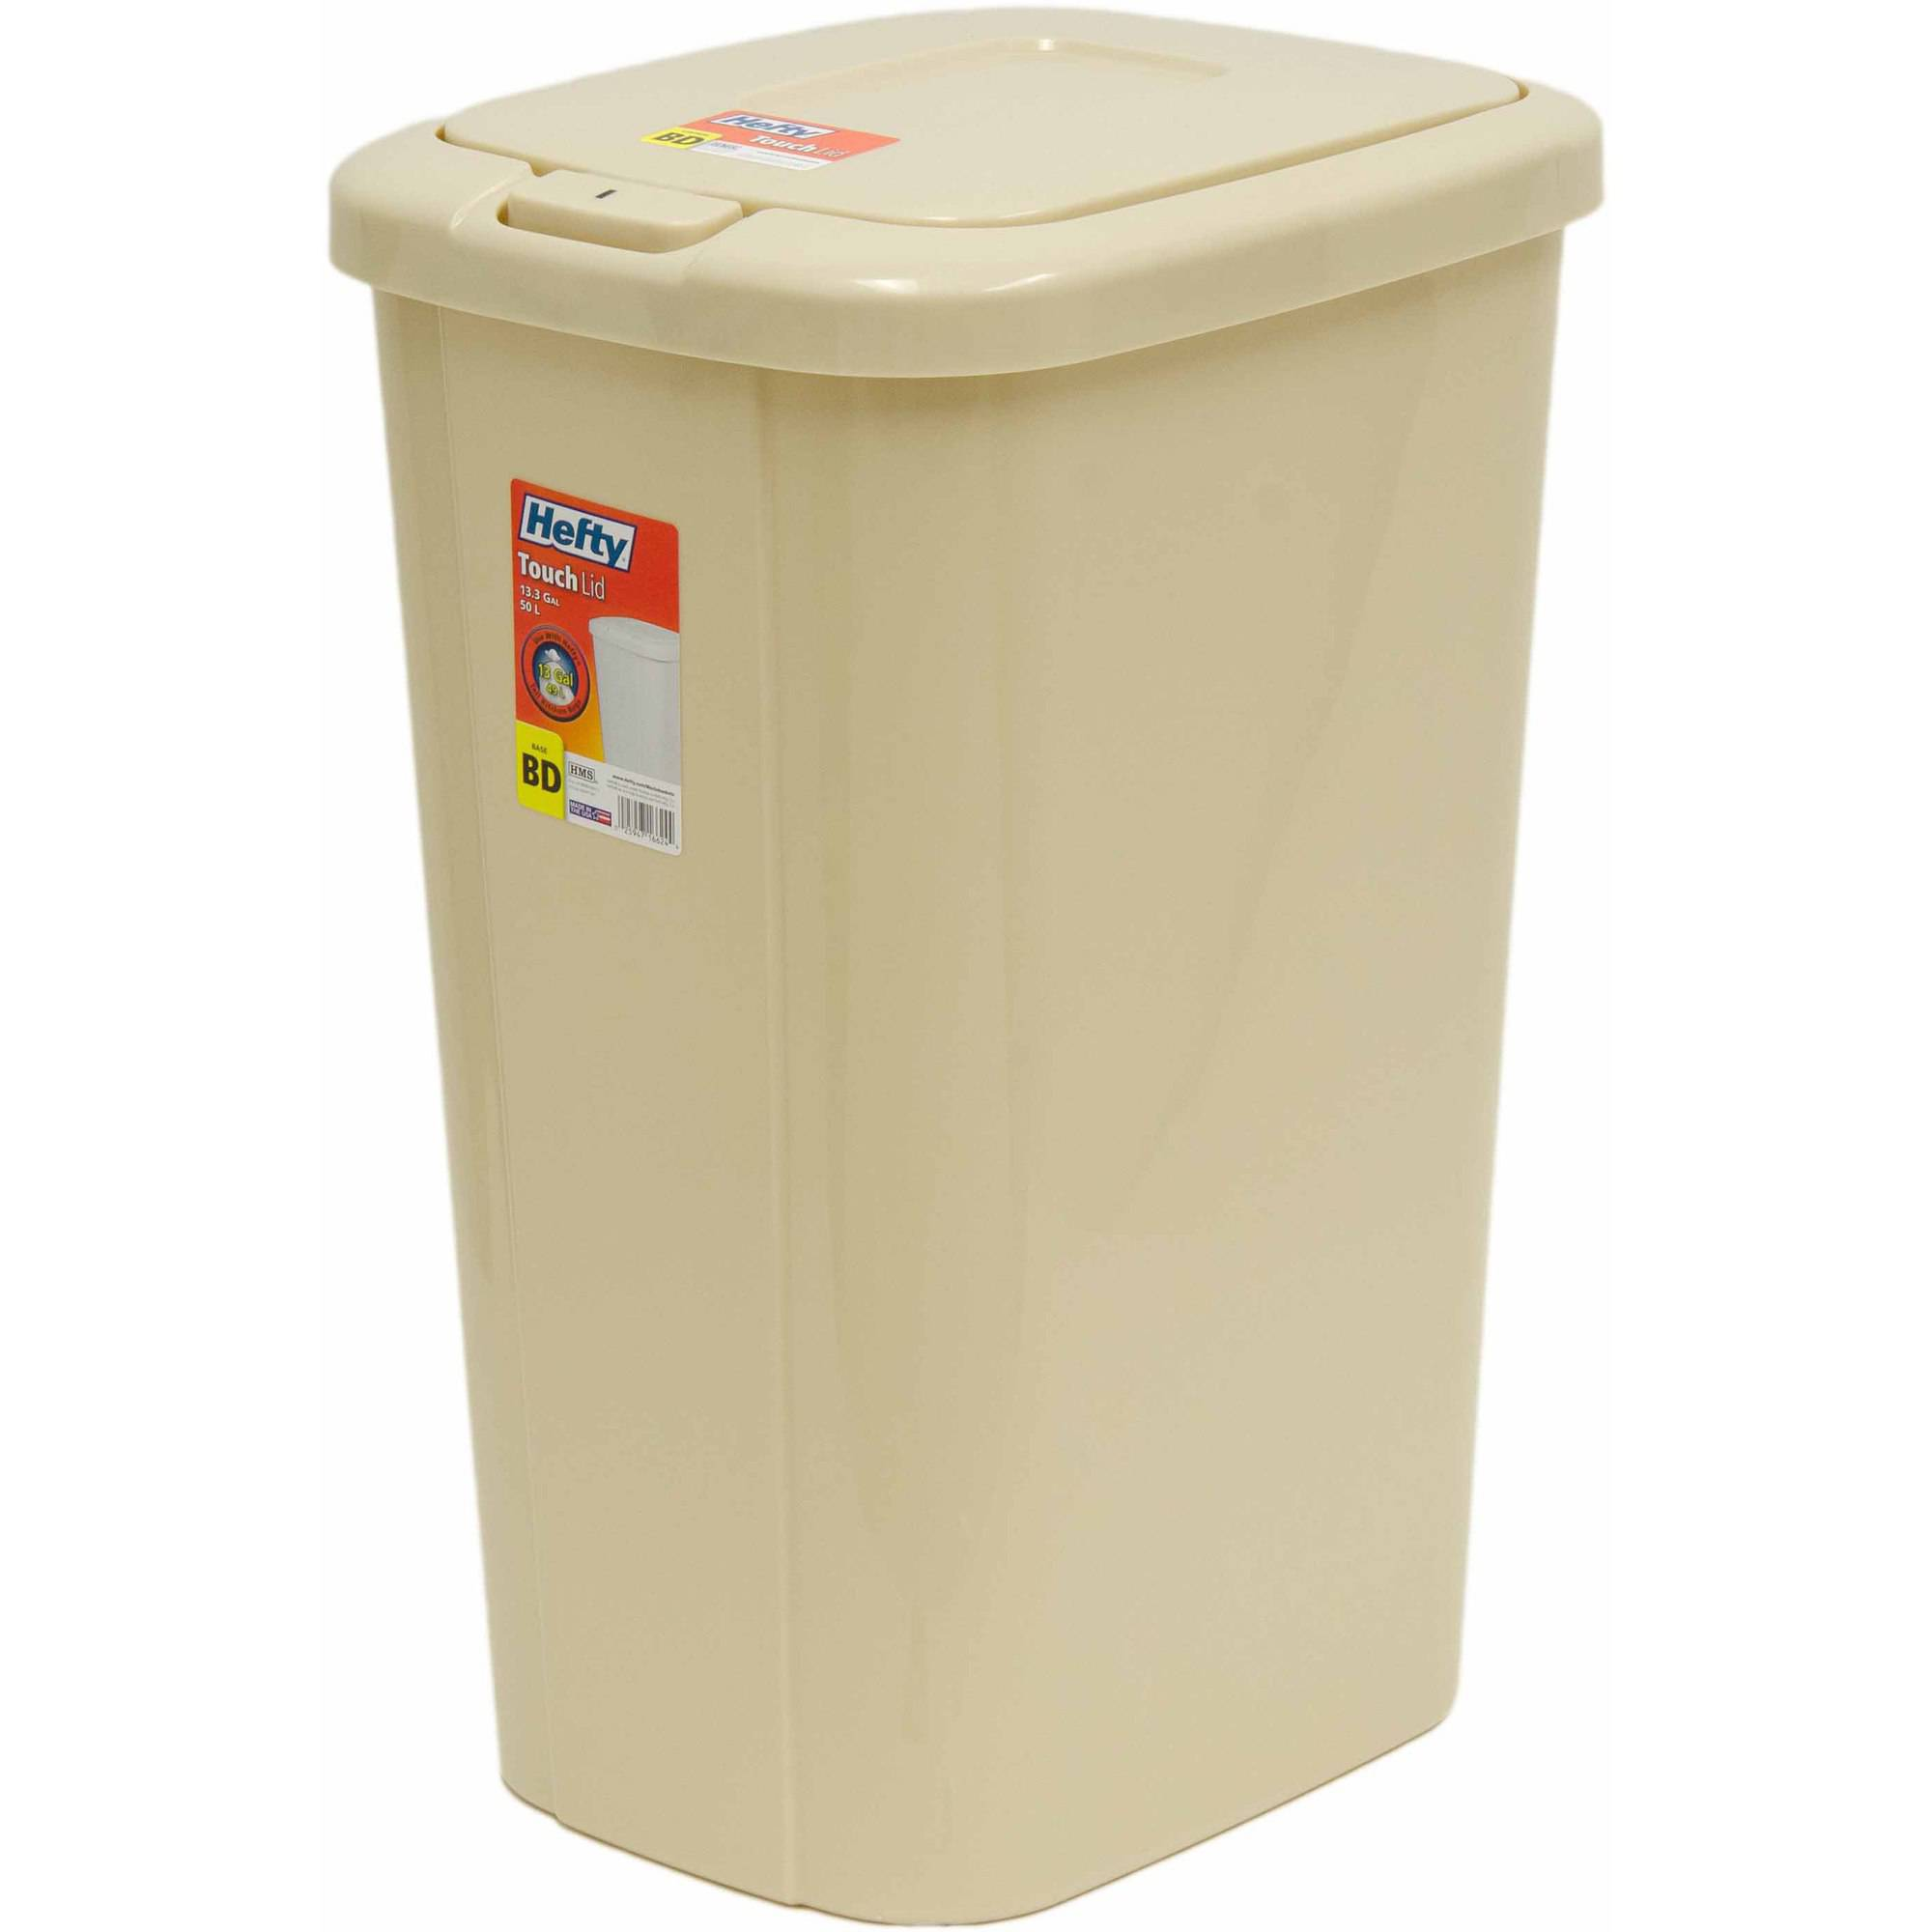 Etonnant Hefty Touch Lid 13.3 Gallon Trash Can, Multiple Colors   Walmart.com